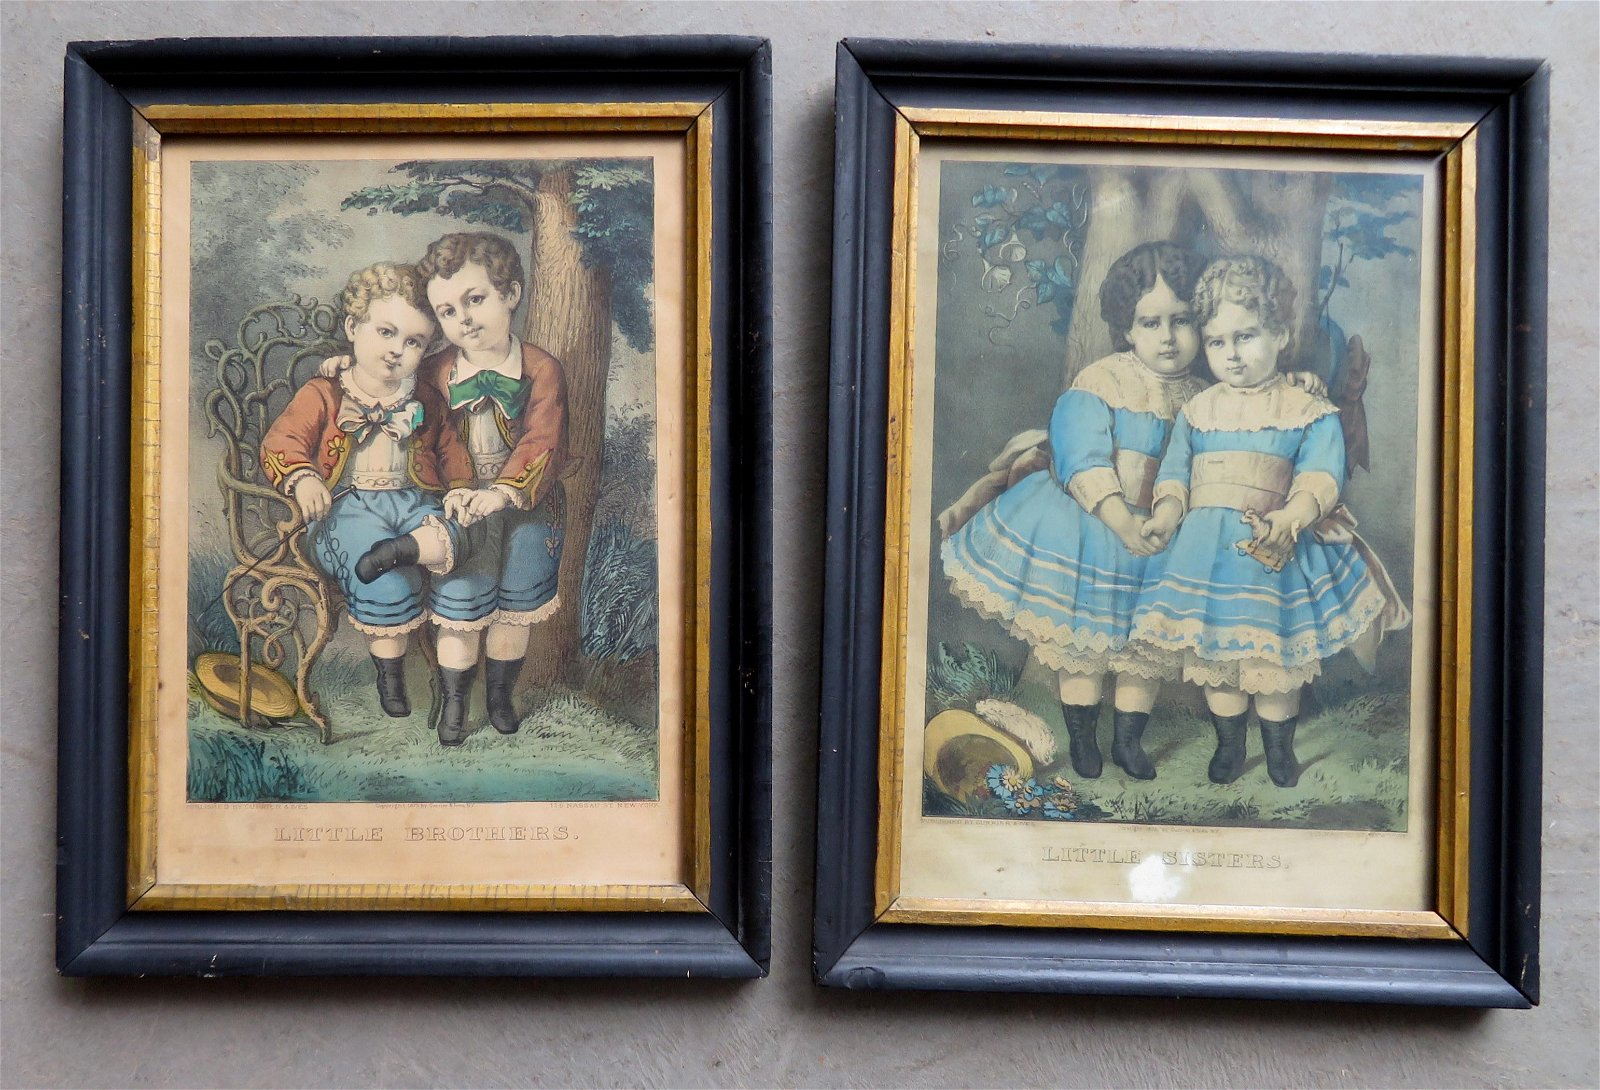 Two children Currier & Ives lithographs entitled